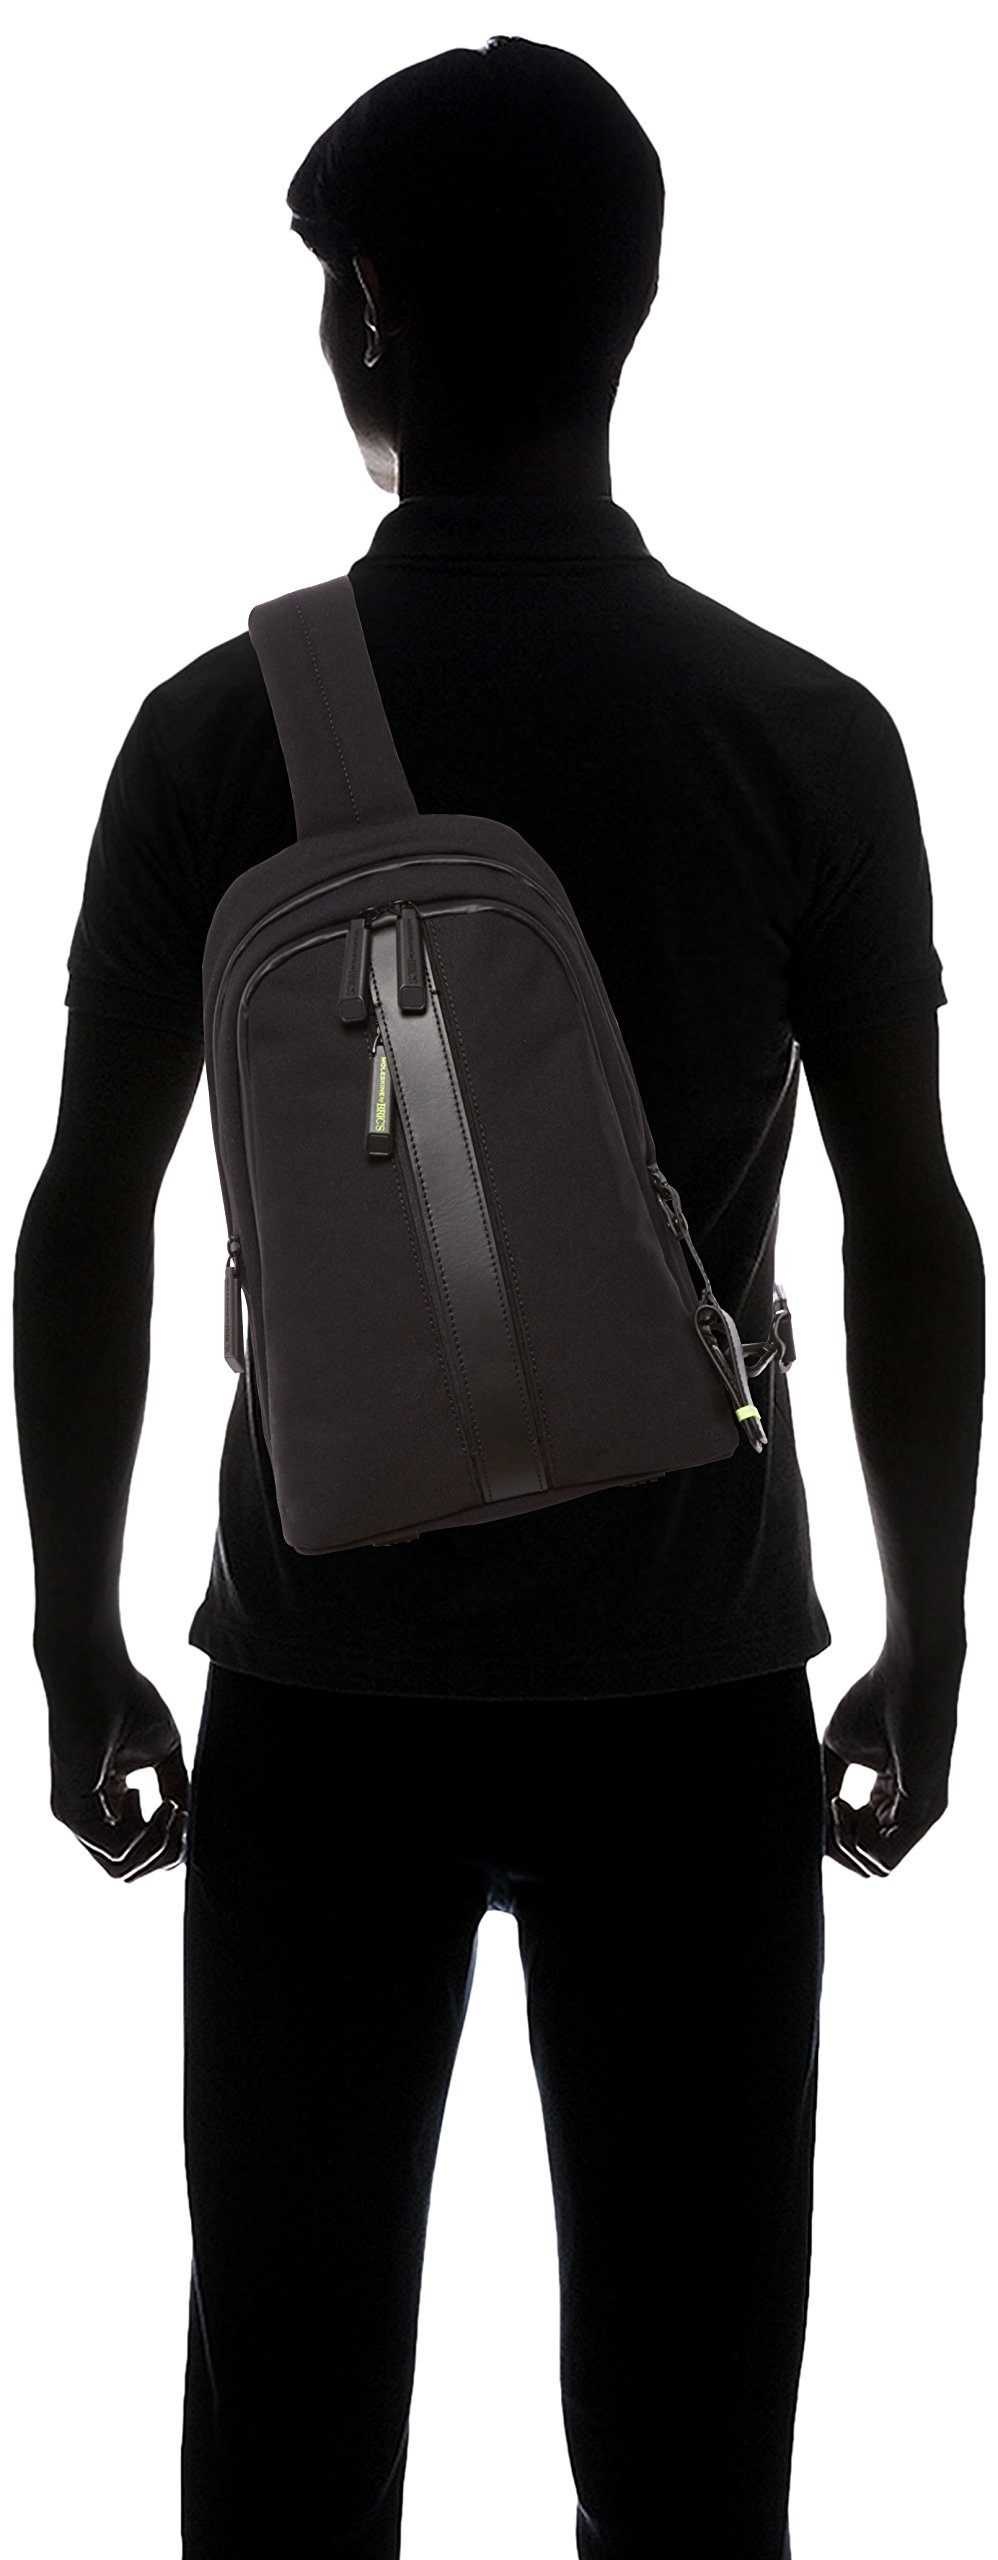 Bric's Men's Moleskine Bag Sling Backpack, Black, One Size by Bric's (Image #9)